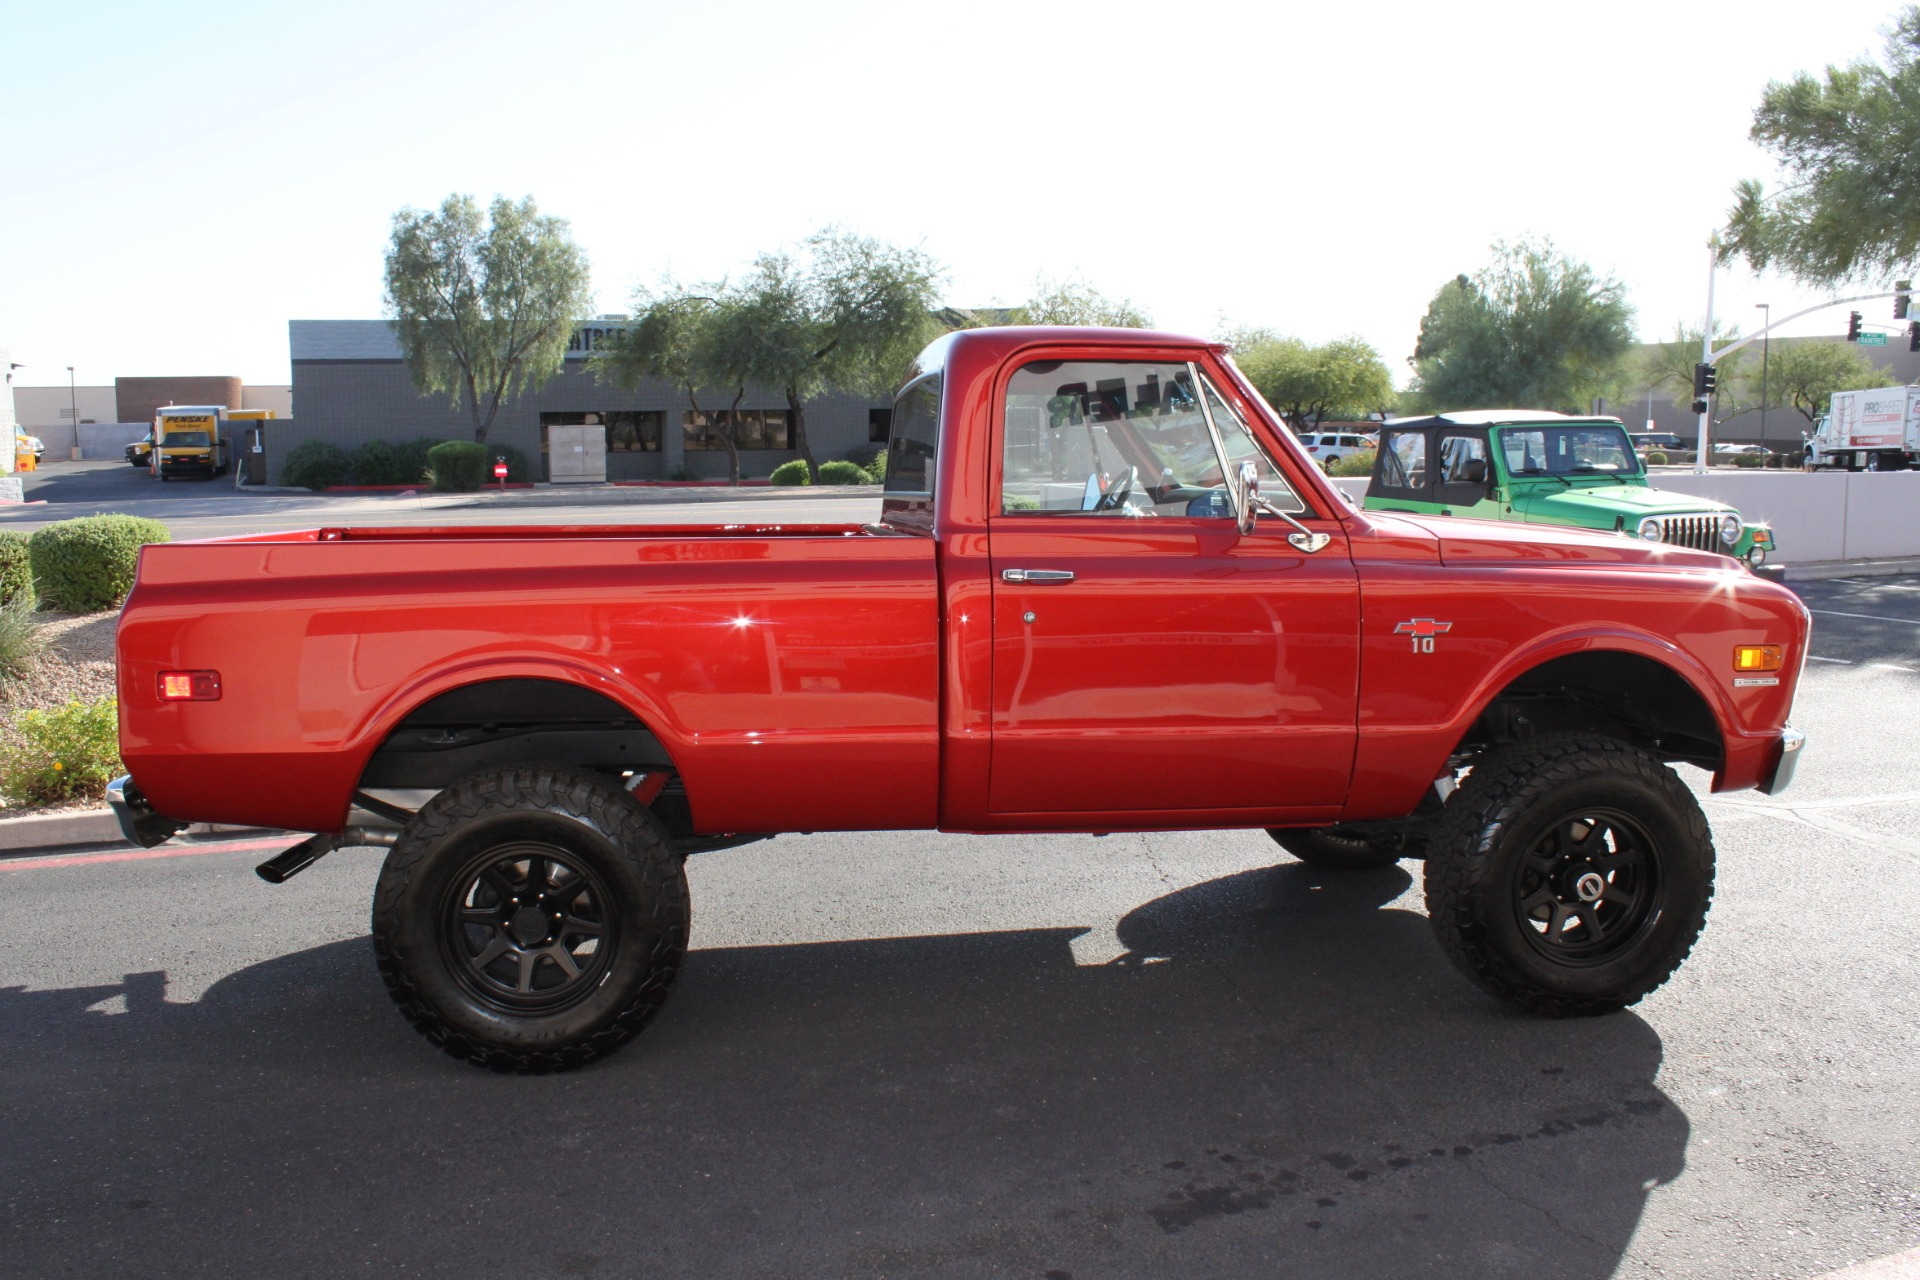 Used-1968-Chevrolet-K10-(C10)-1/2-Ton-Short-Bed-4X4-Wrangler